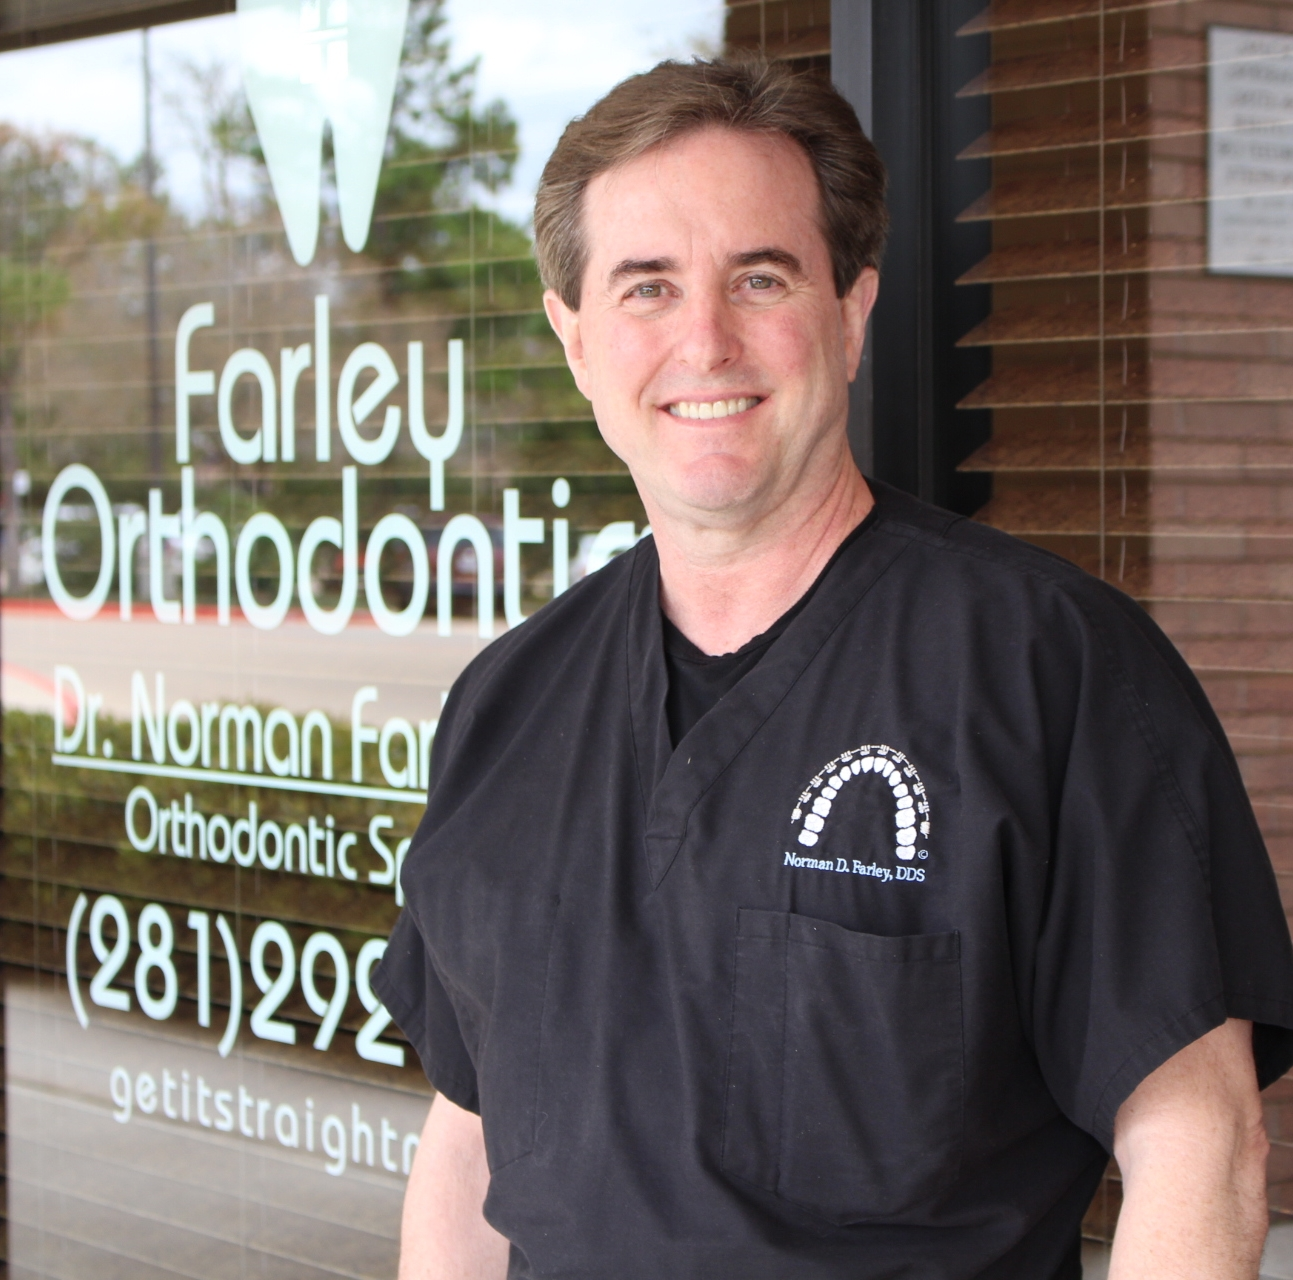 Woodlands Orthodontist - Dr. Norman Farley